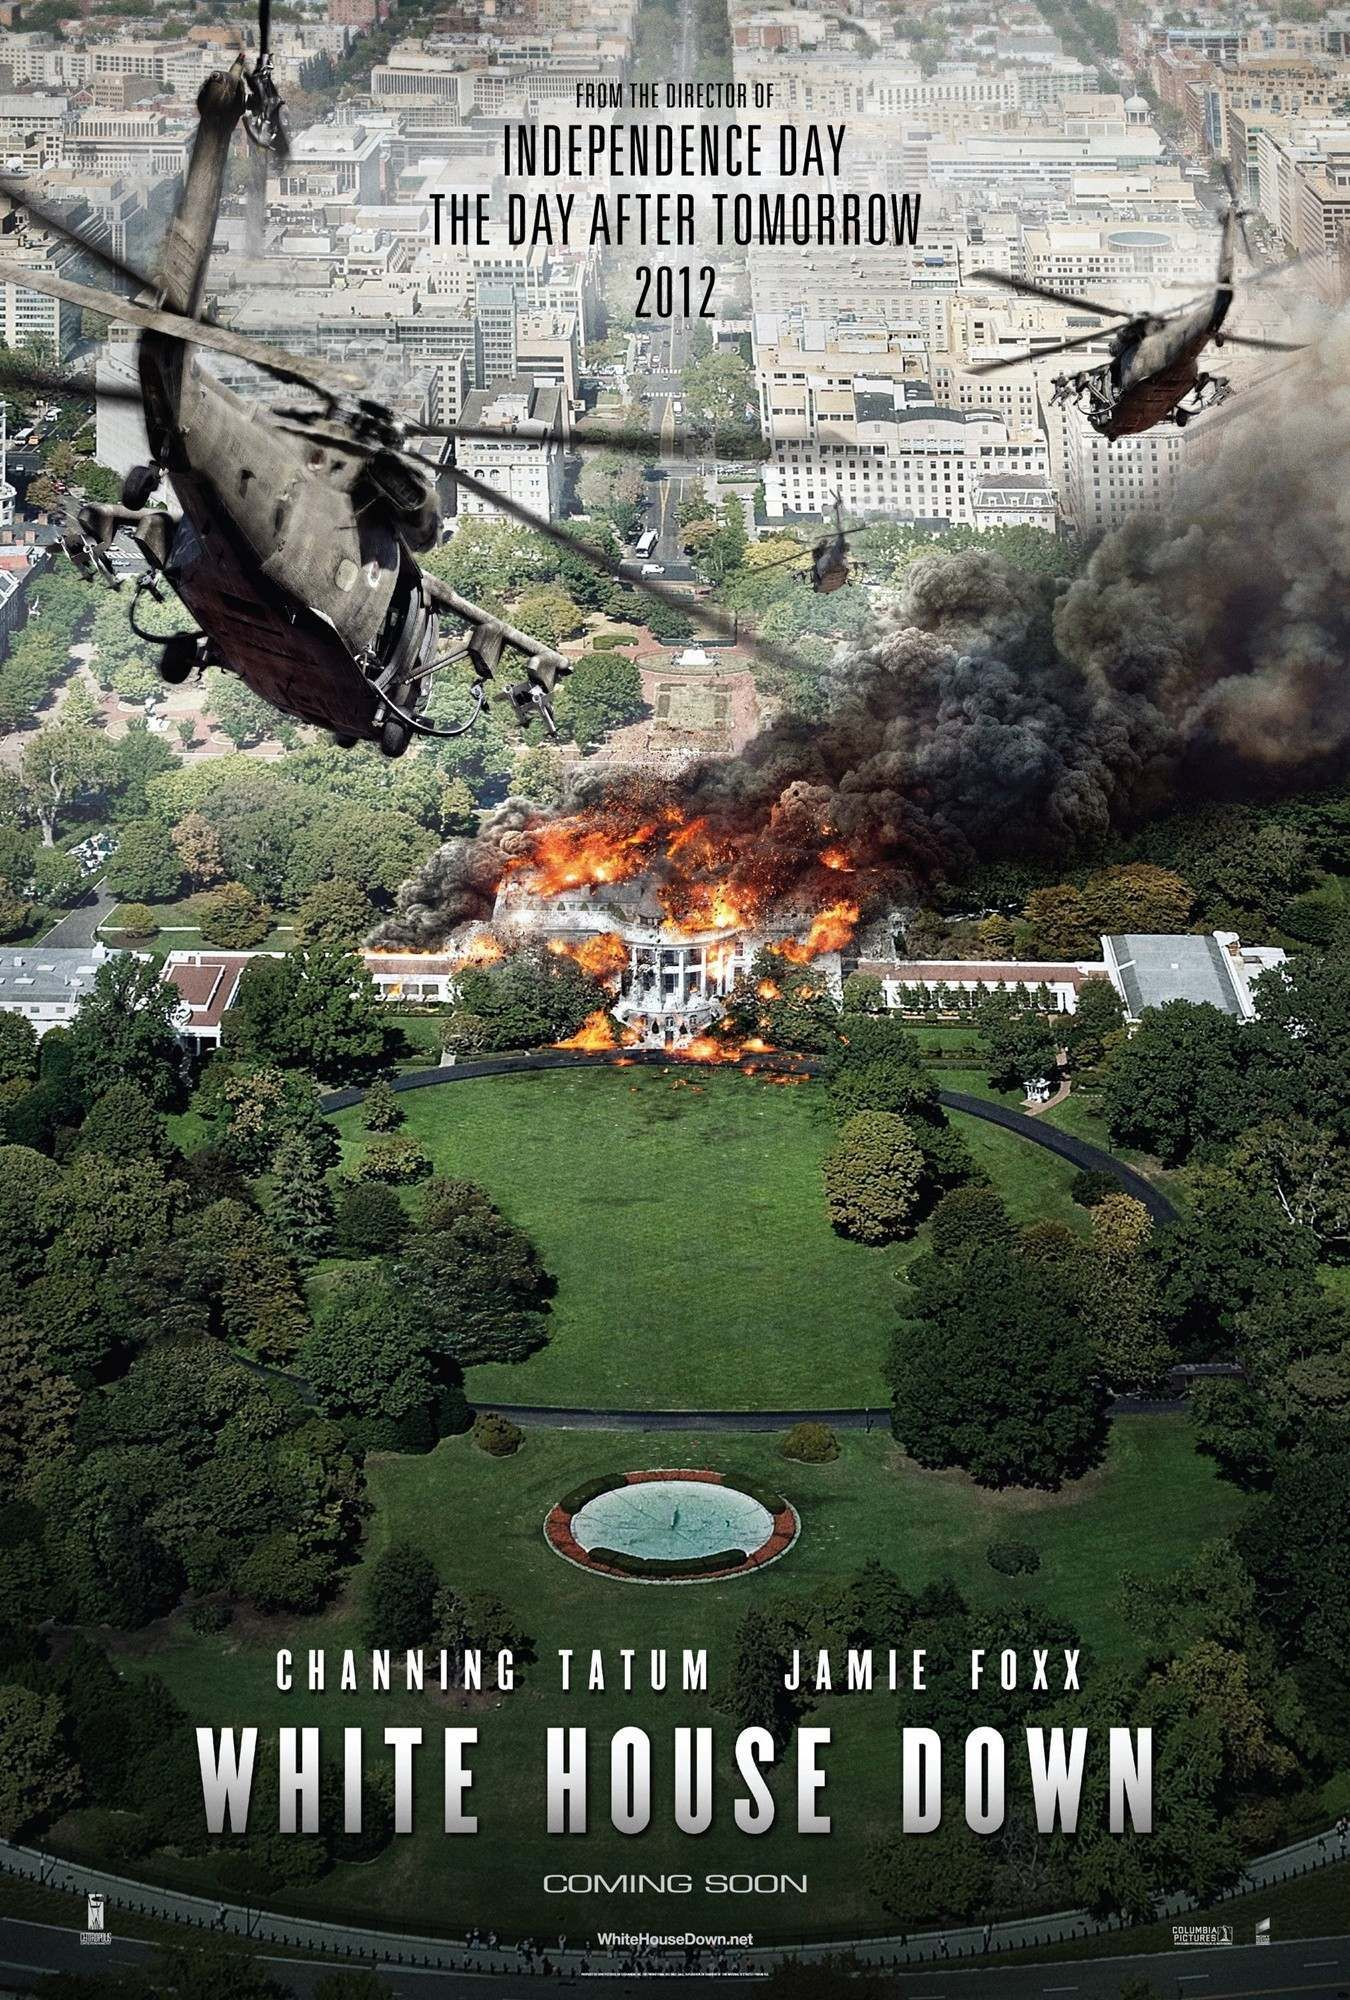 White House Down (2013) TRAILER 3